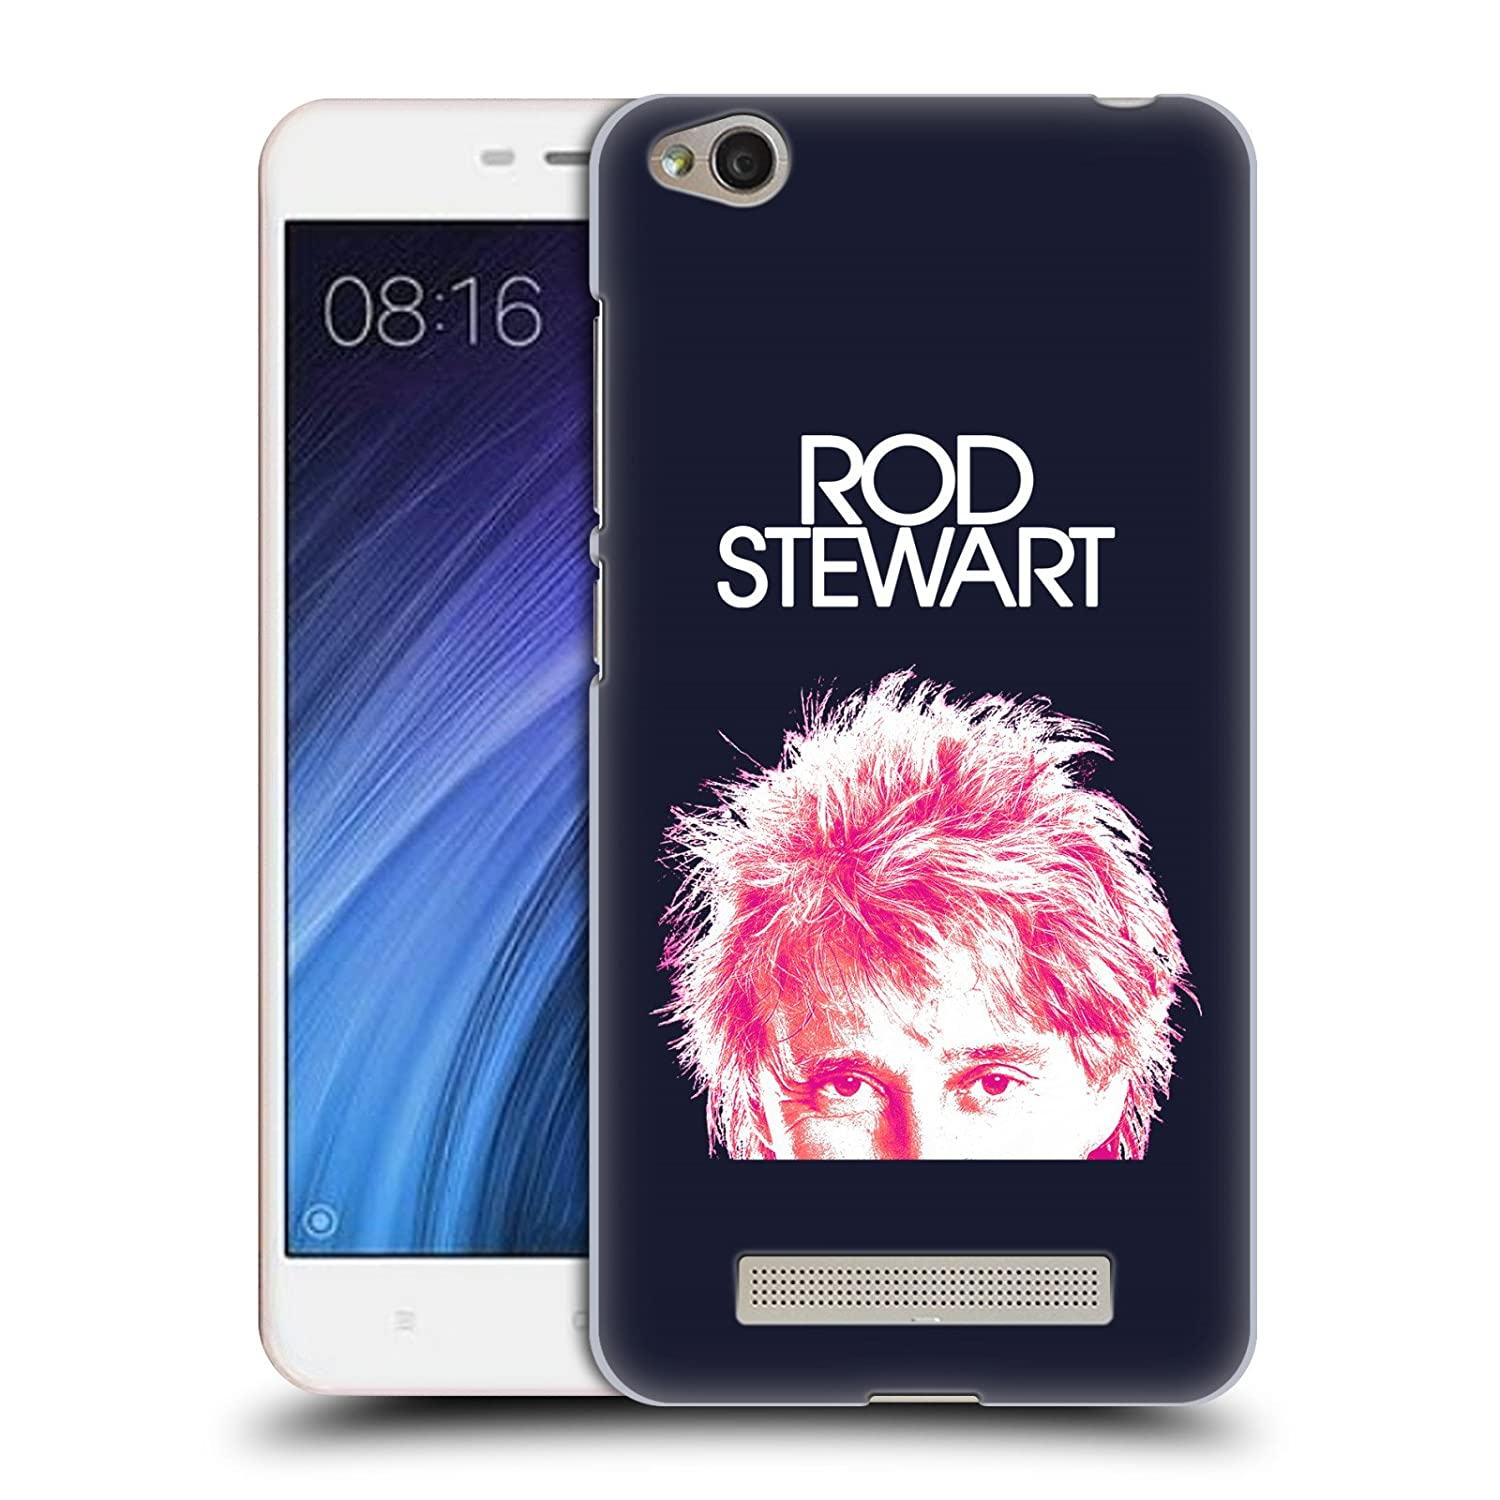 Amazon ficial Rod Stewart Neon Art Hard Back Case for Xiaomi Redmi 4a Cell Phones & Accessories